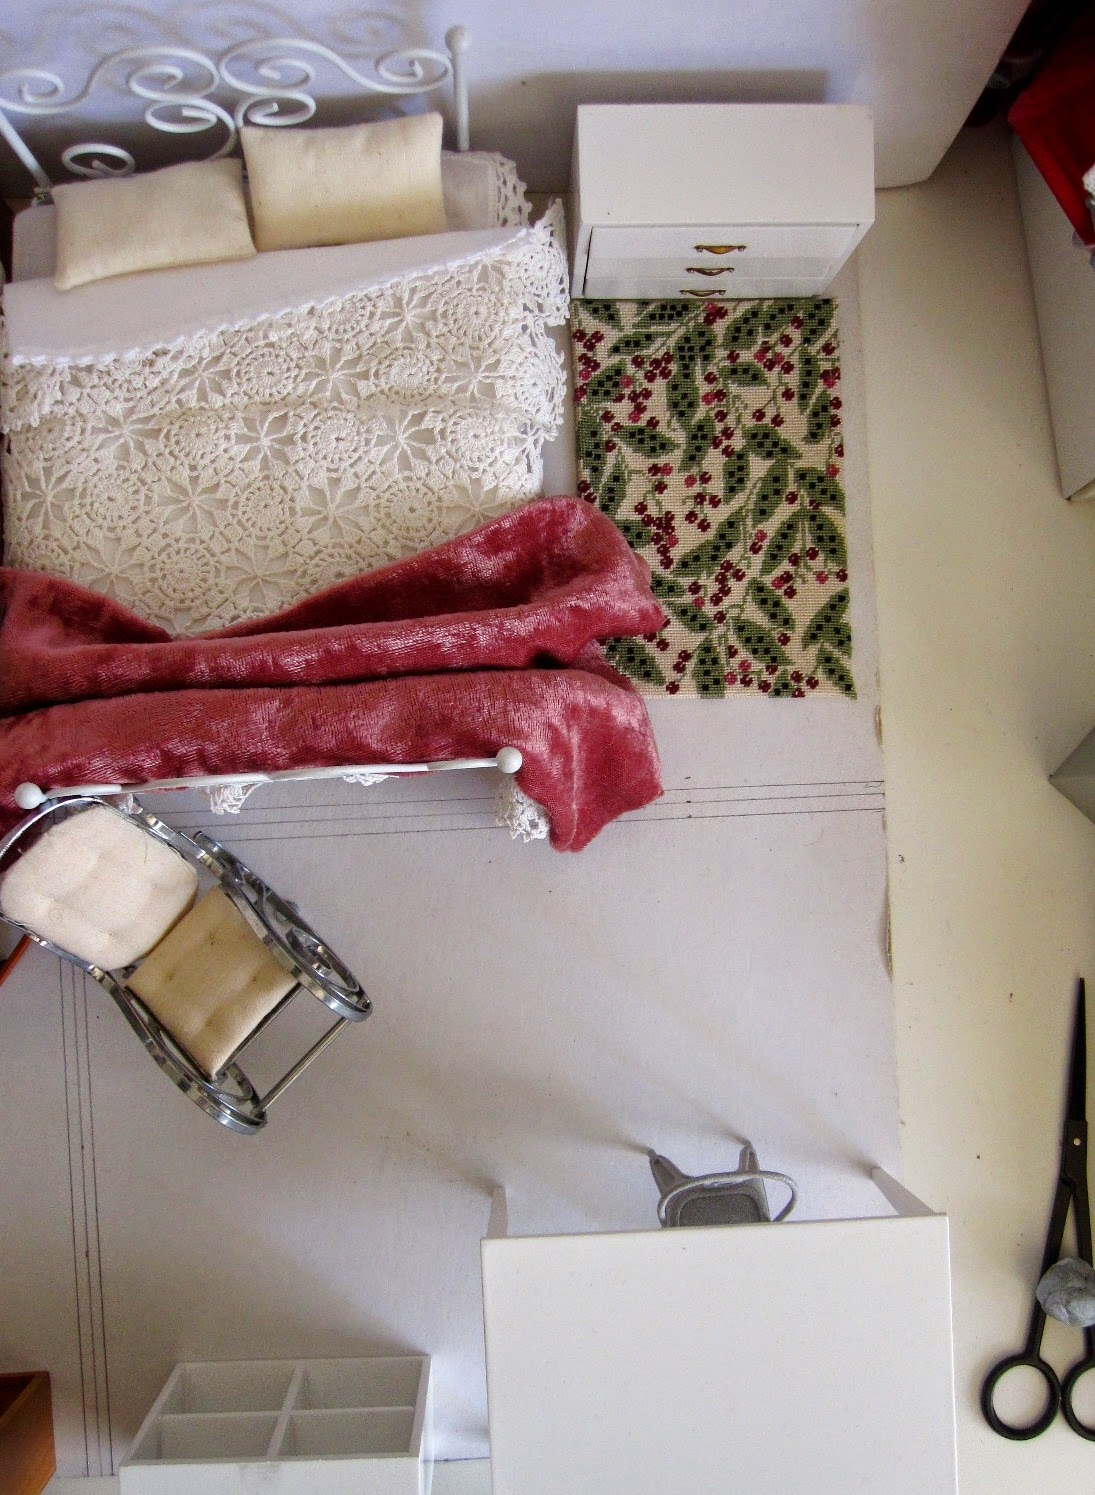 View from above of shabby chic dolls' house miniature furniture bedroom setting arranged on a piece of cardboard.